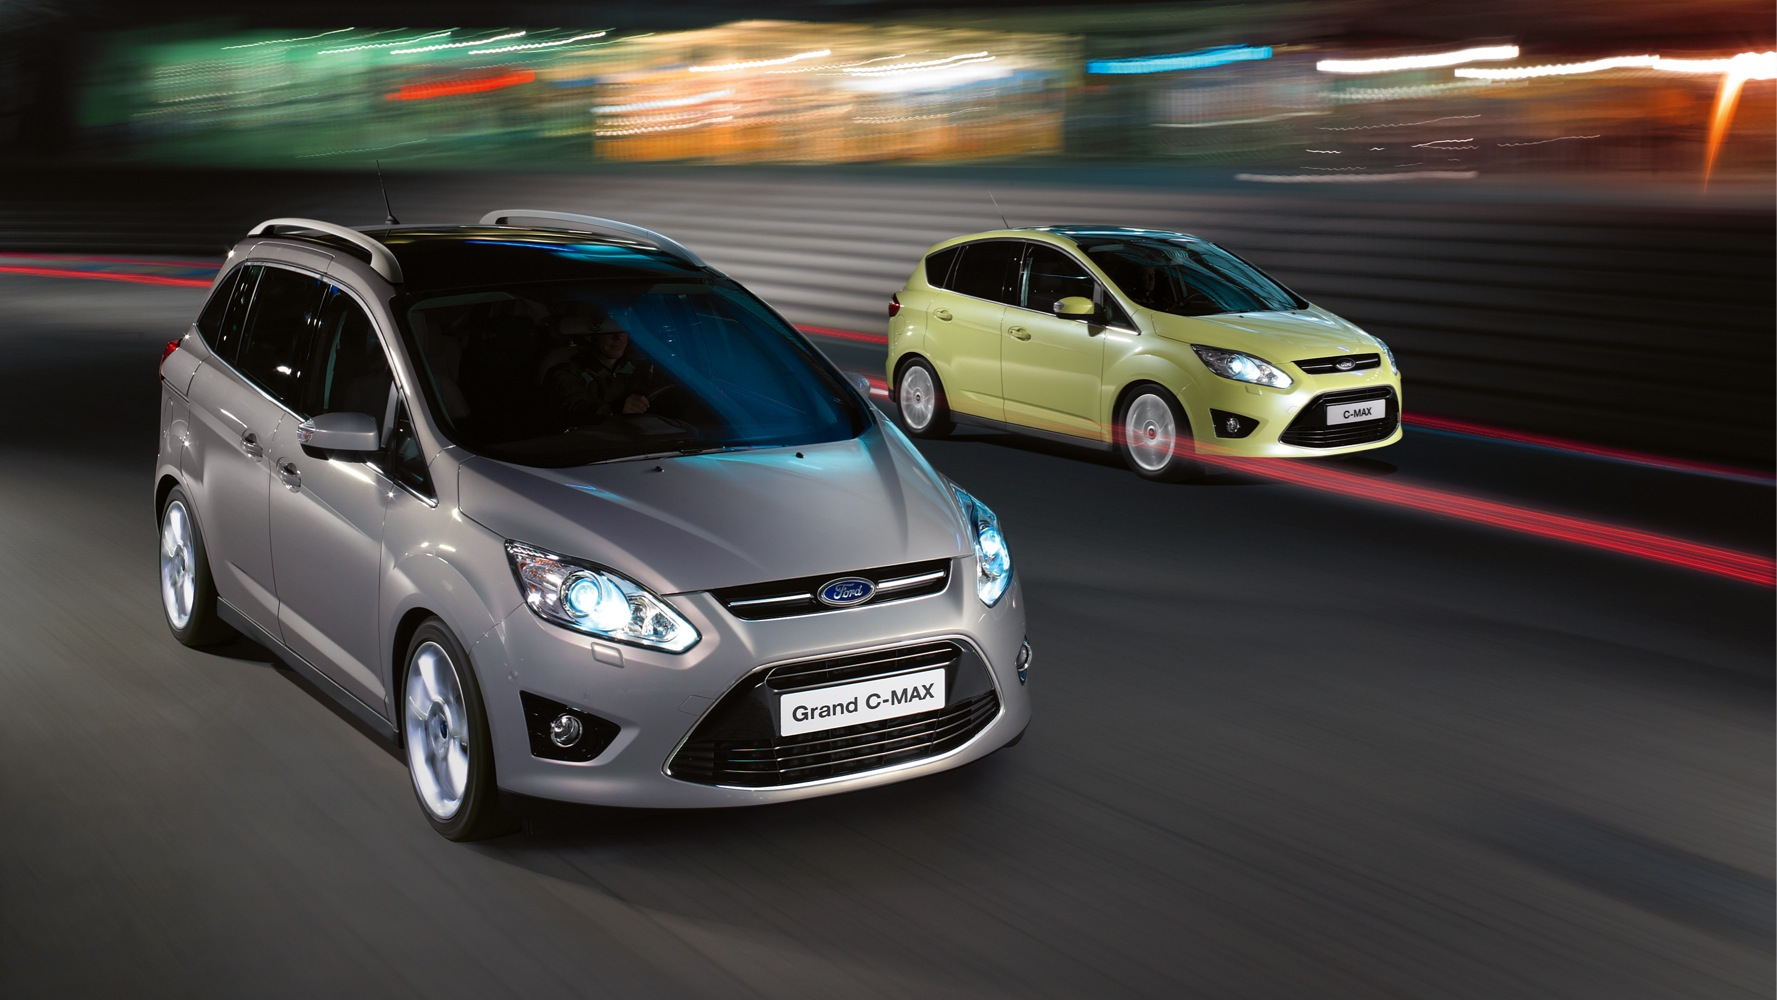 2010 Ford C-Max #18